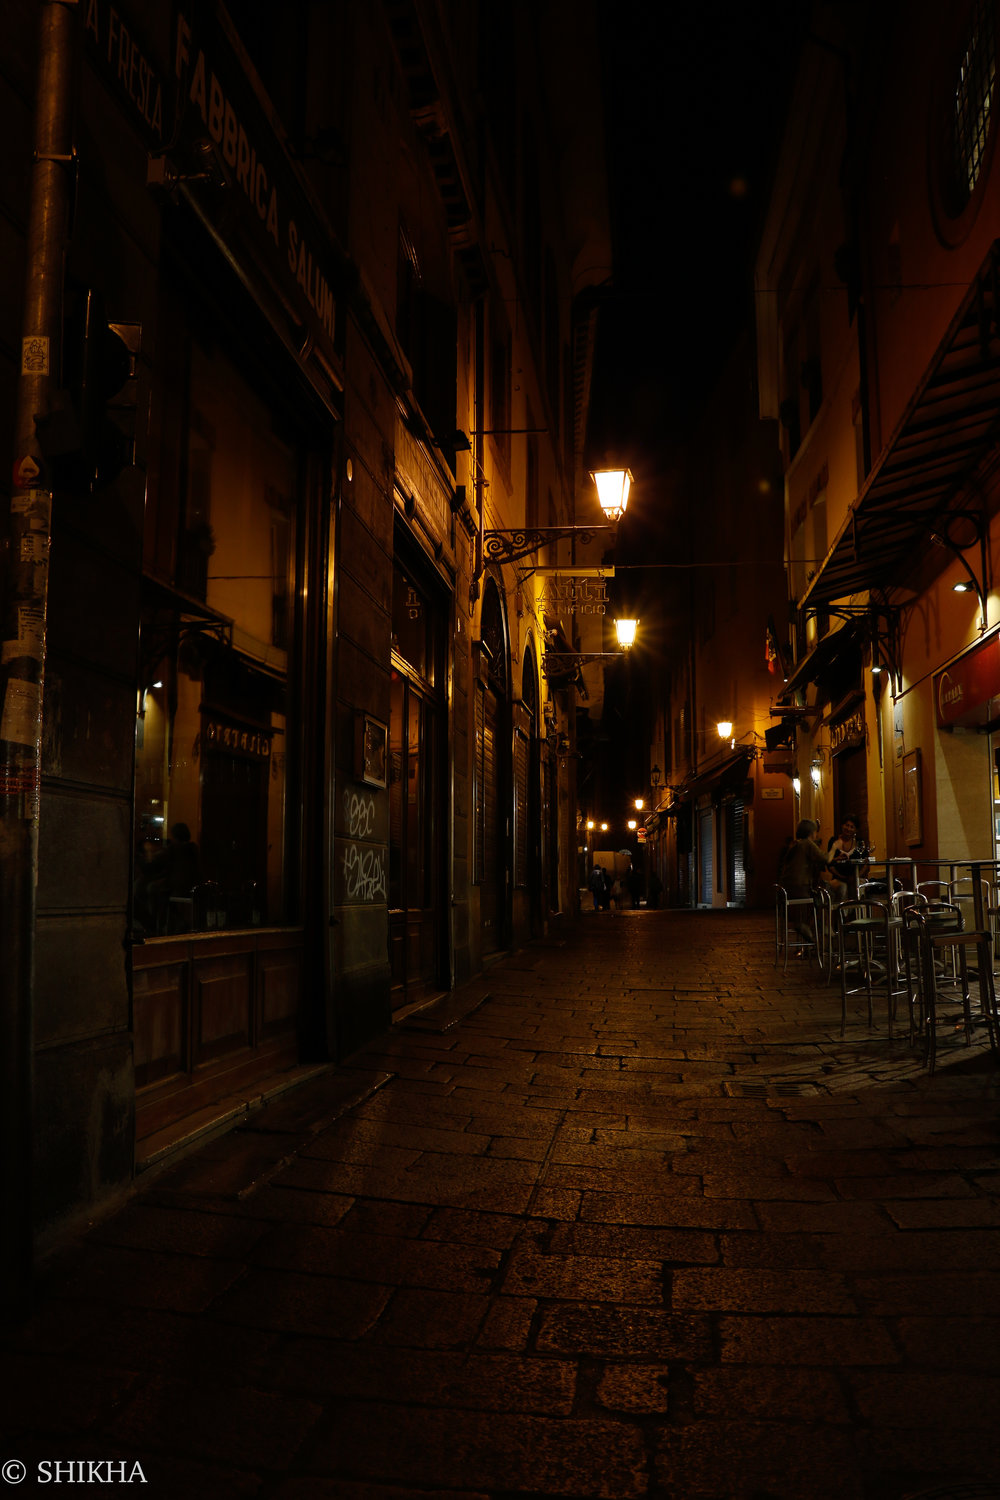 Streets of Bologna at 3am